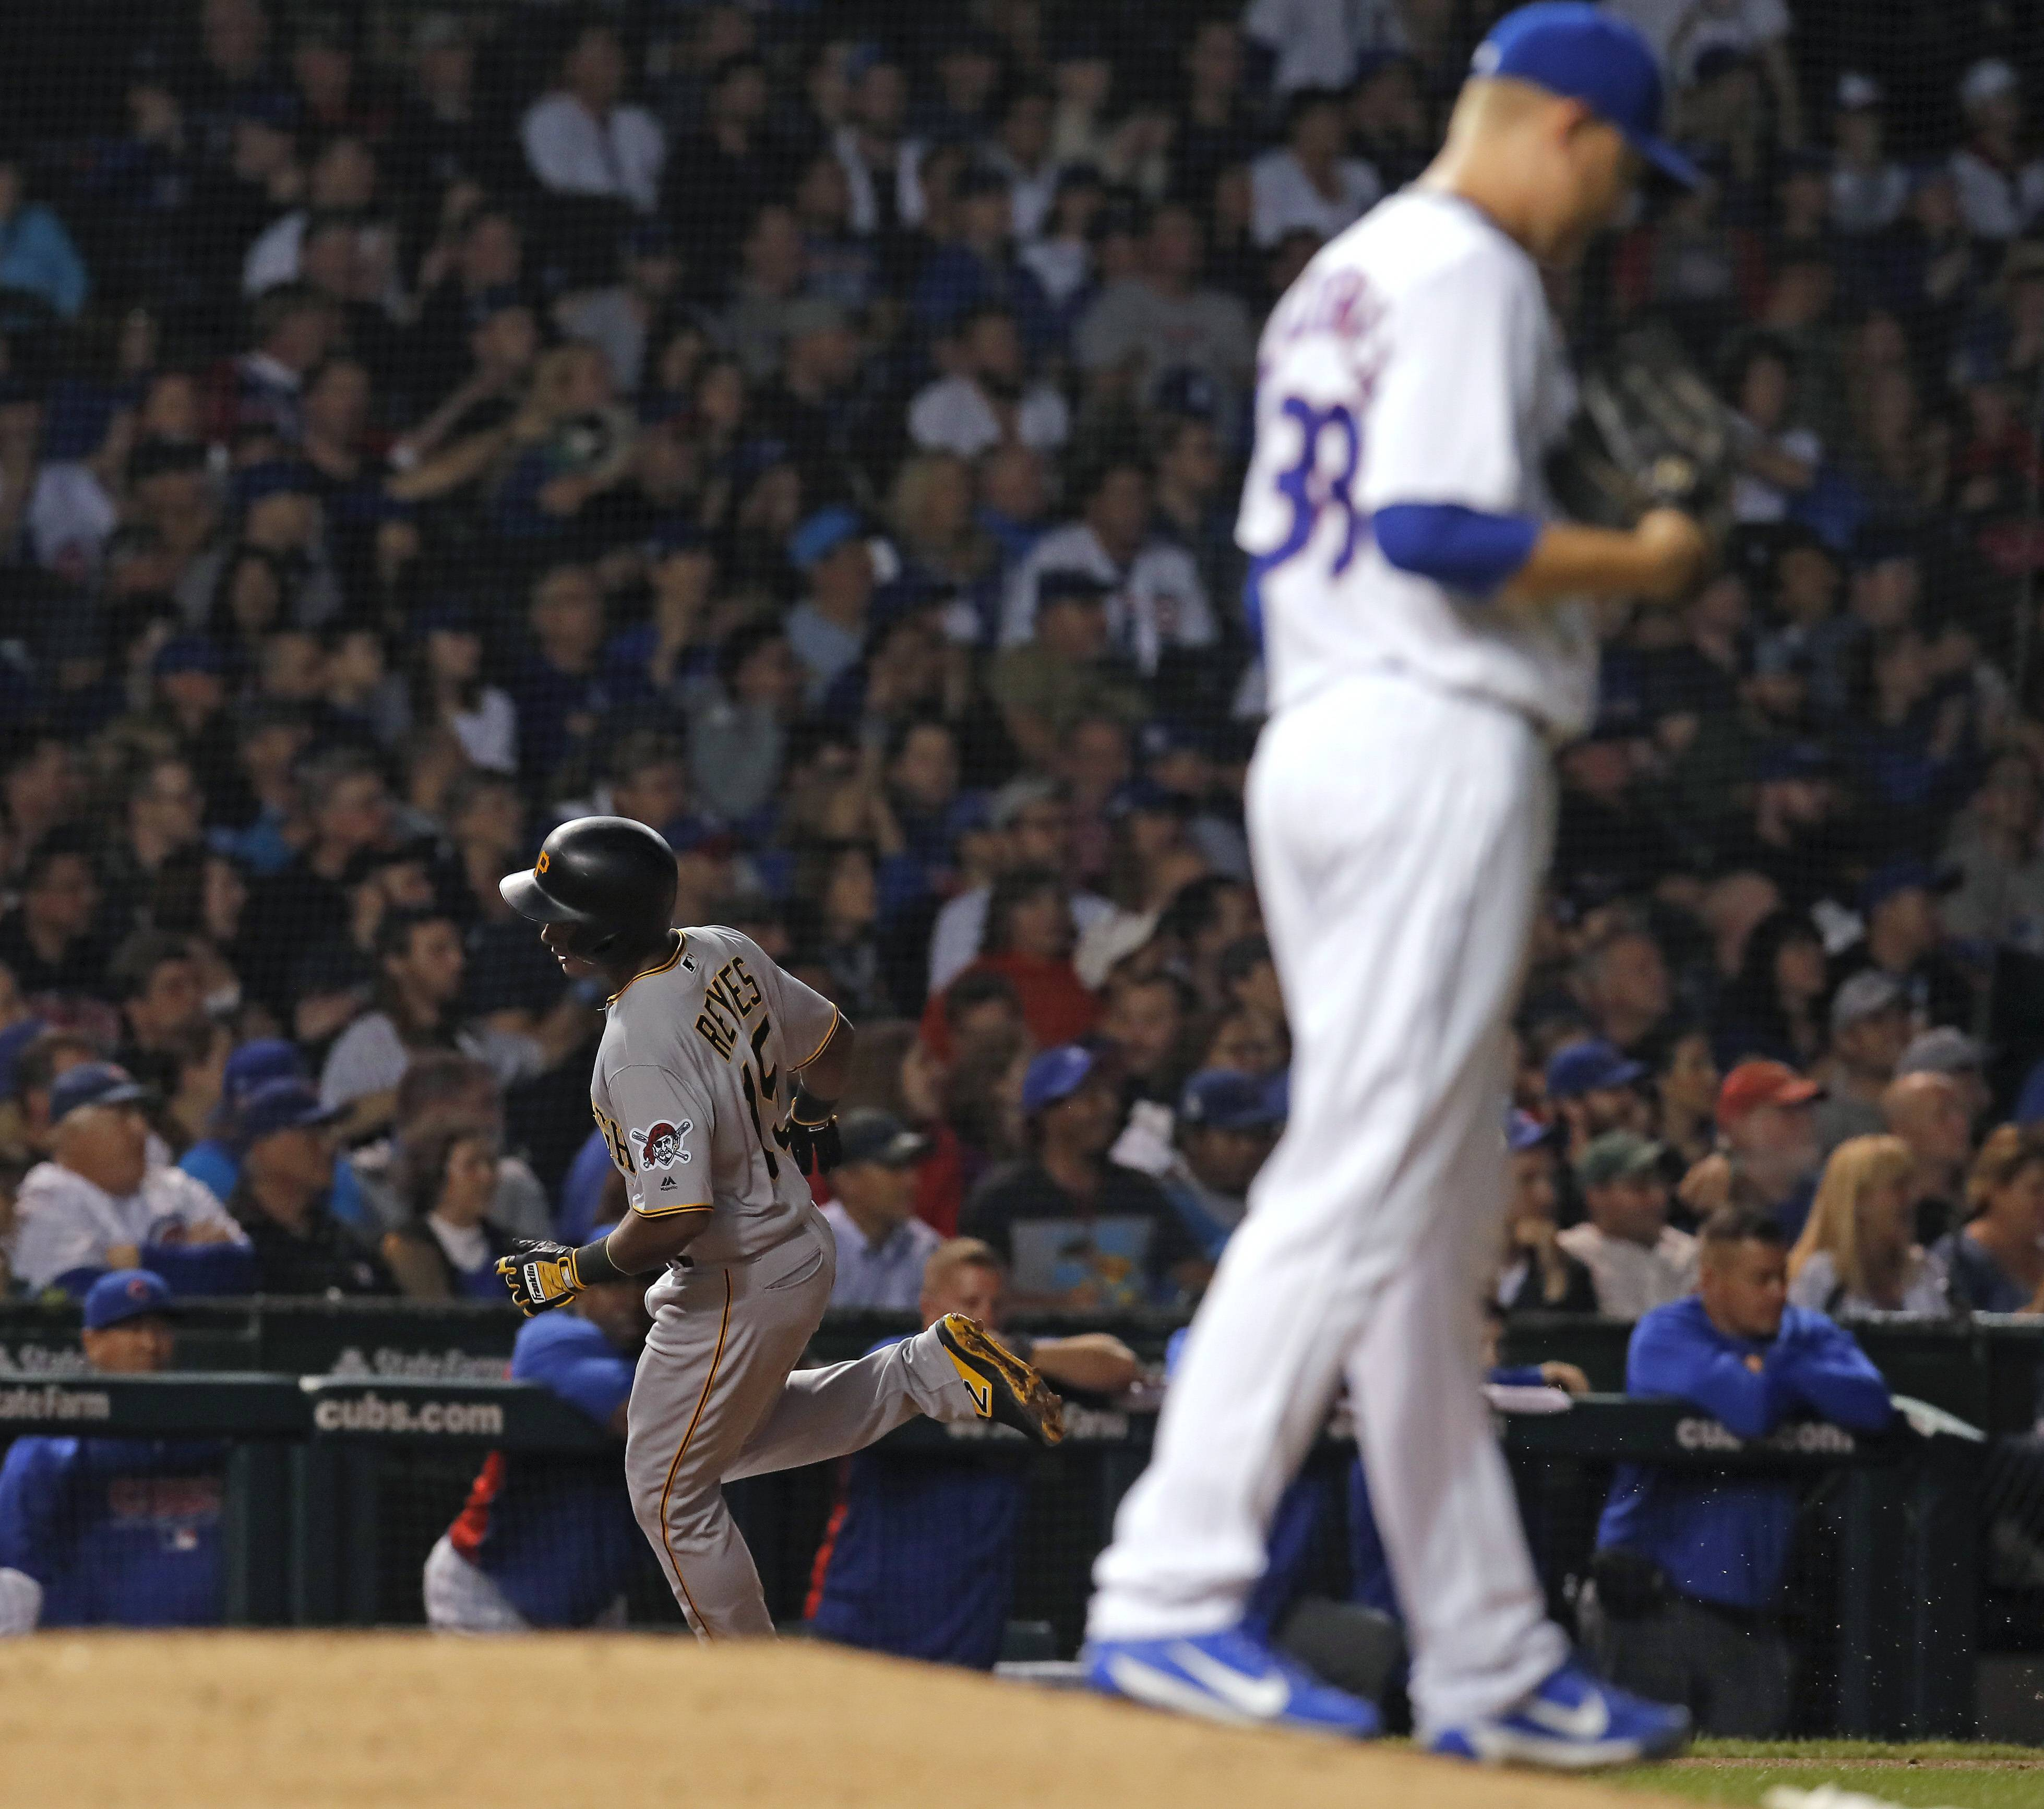 Pittsburgh Pirates' Pablo Reyes, left, rounds the bases after hitting a three-run home run off Chicago Cubs' Mike Montgomery, foreground, during the second inning of a baseball game Tuesday, Sept. 25, 2018, in Chicago. (AP Photo/Jim Young)